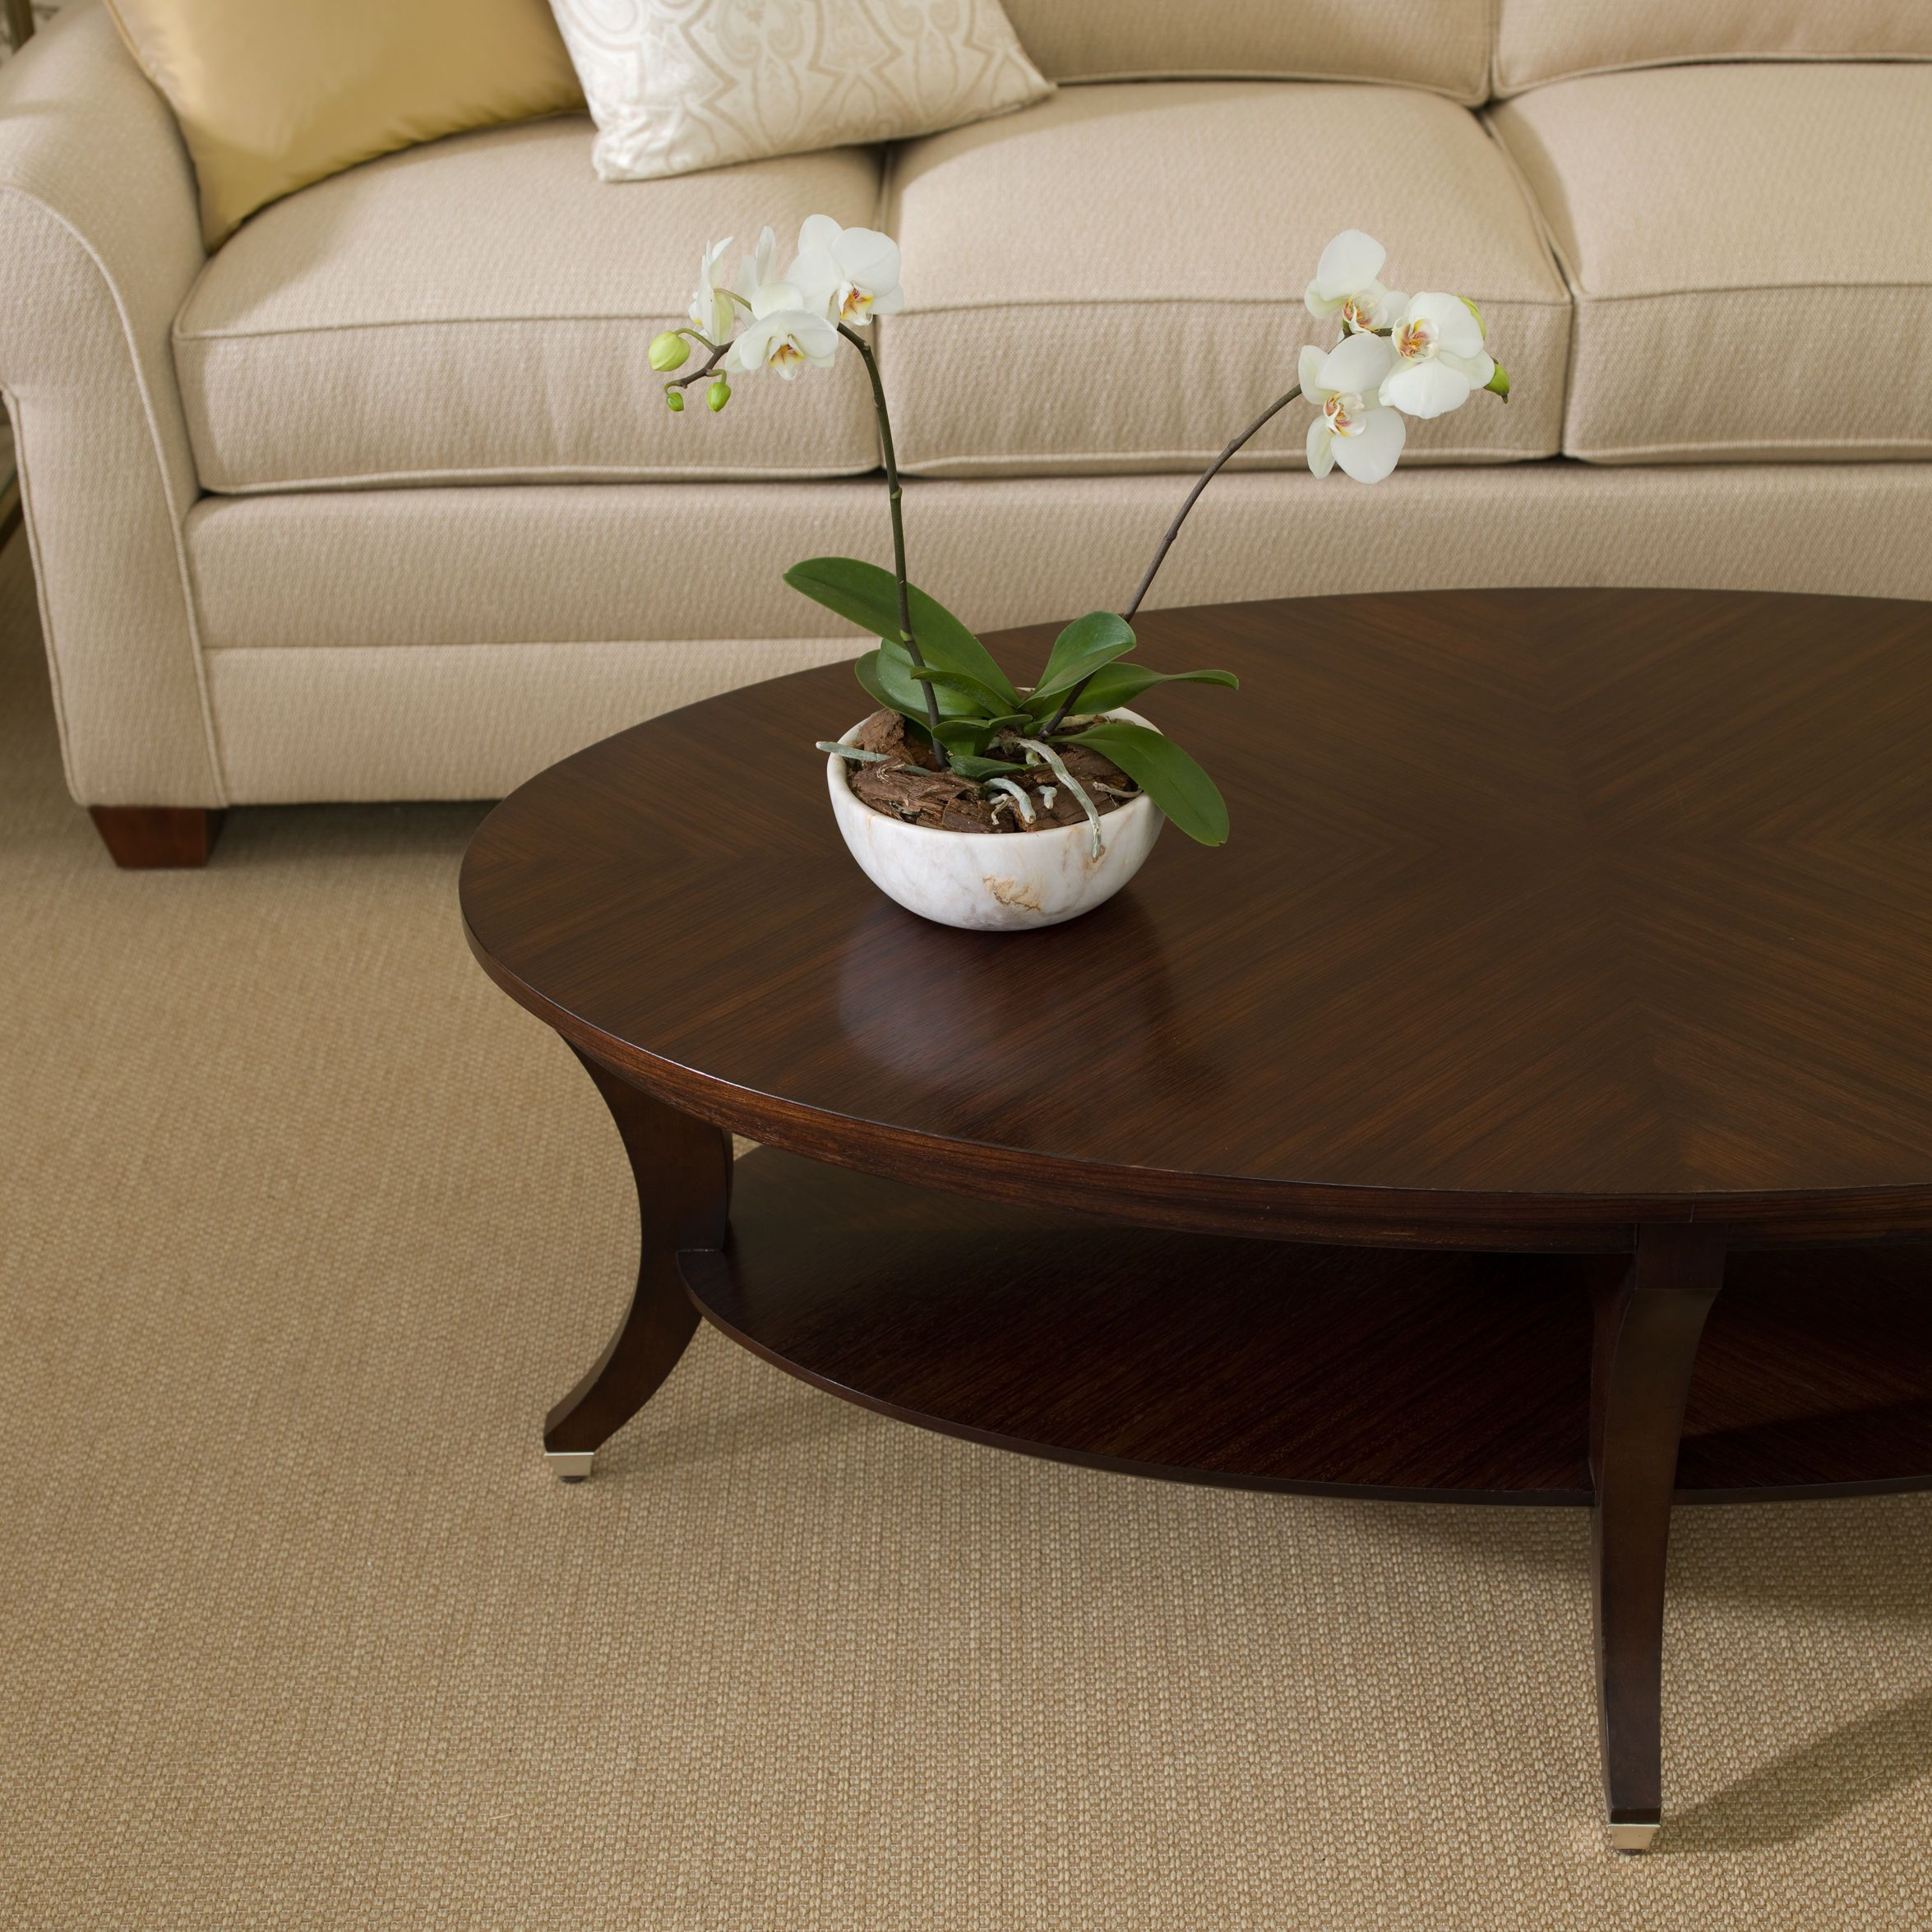 Ethan Allen Oval Glass Coffee Table Round Coffee Table Coffee Table Small Coffee Table [ 1740 x 2430 Pixel ]